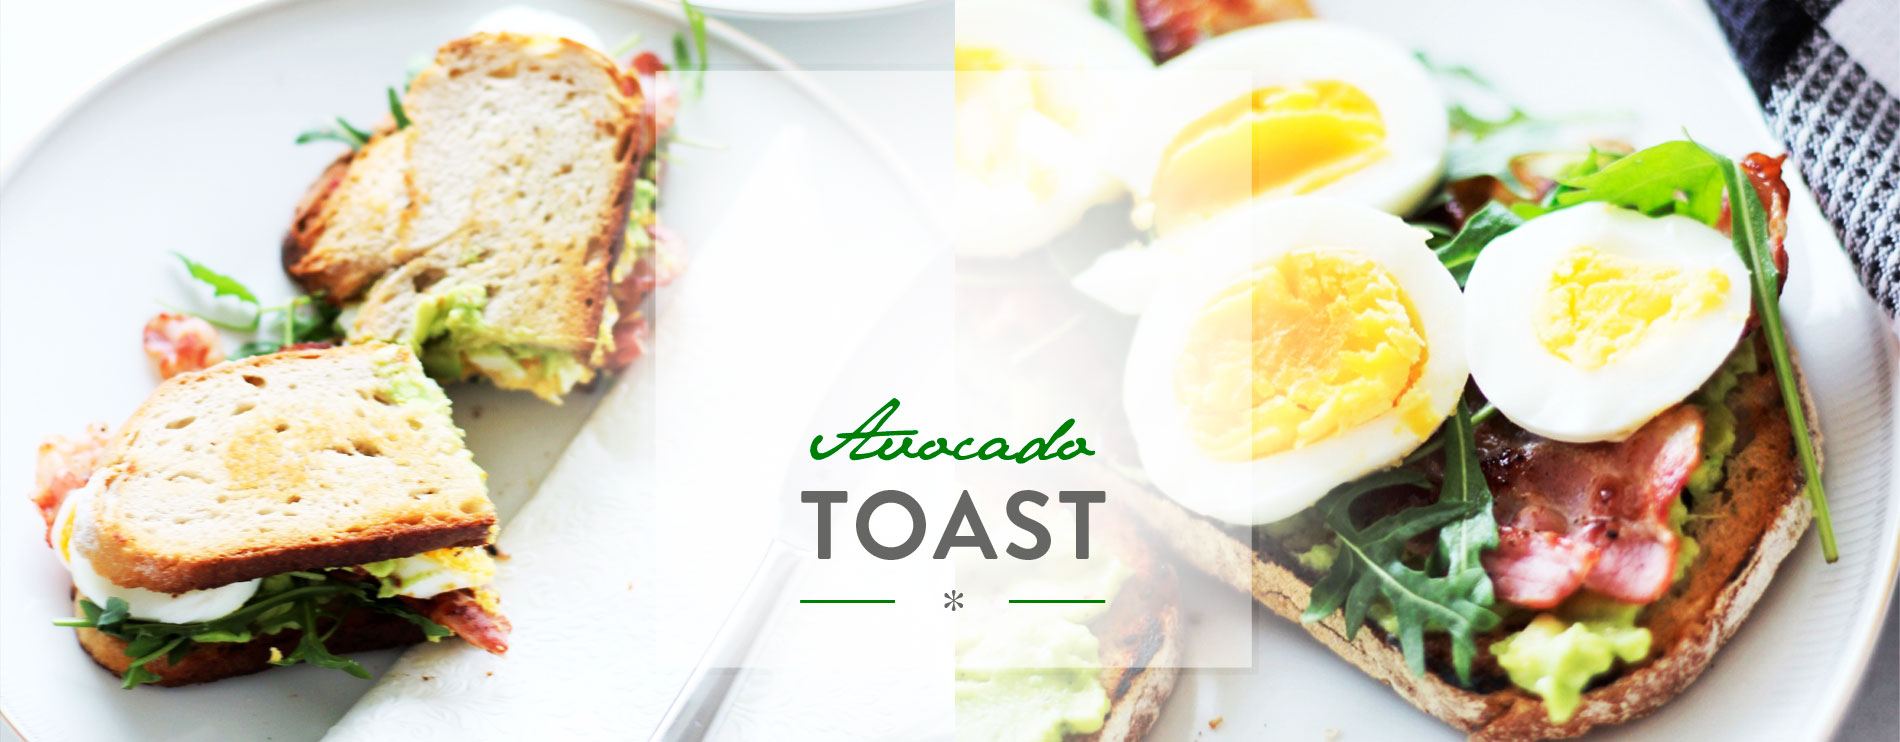 Header Avocado Toast